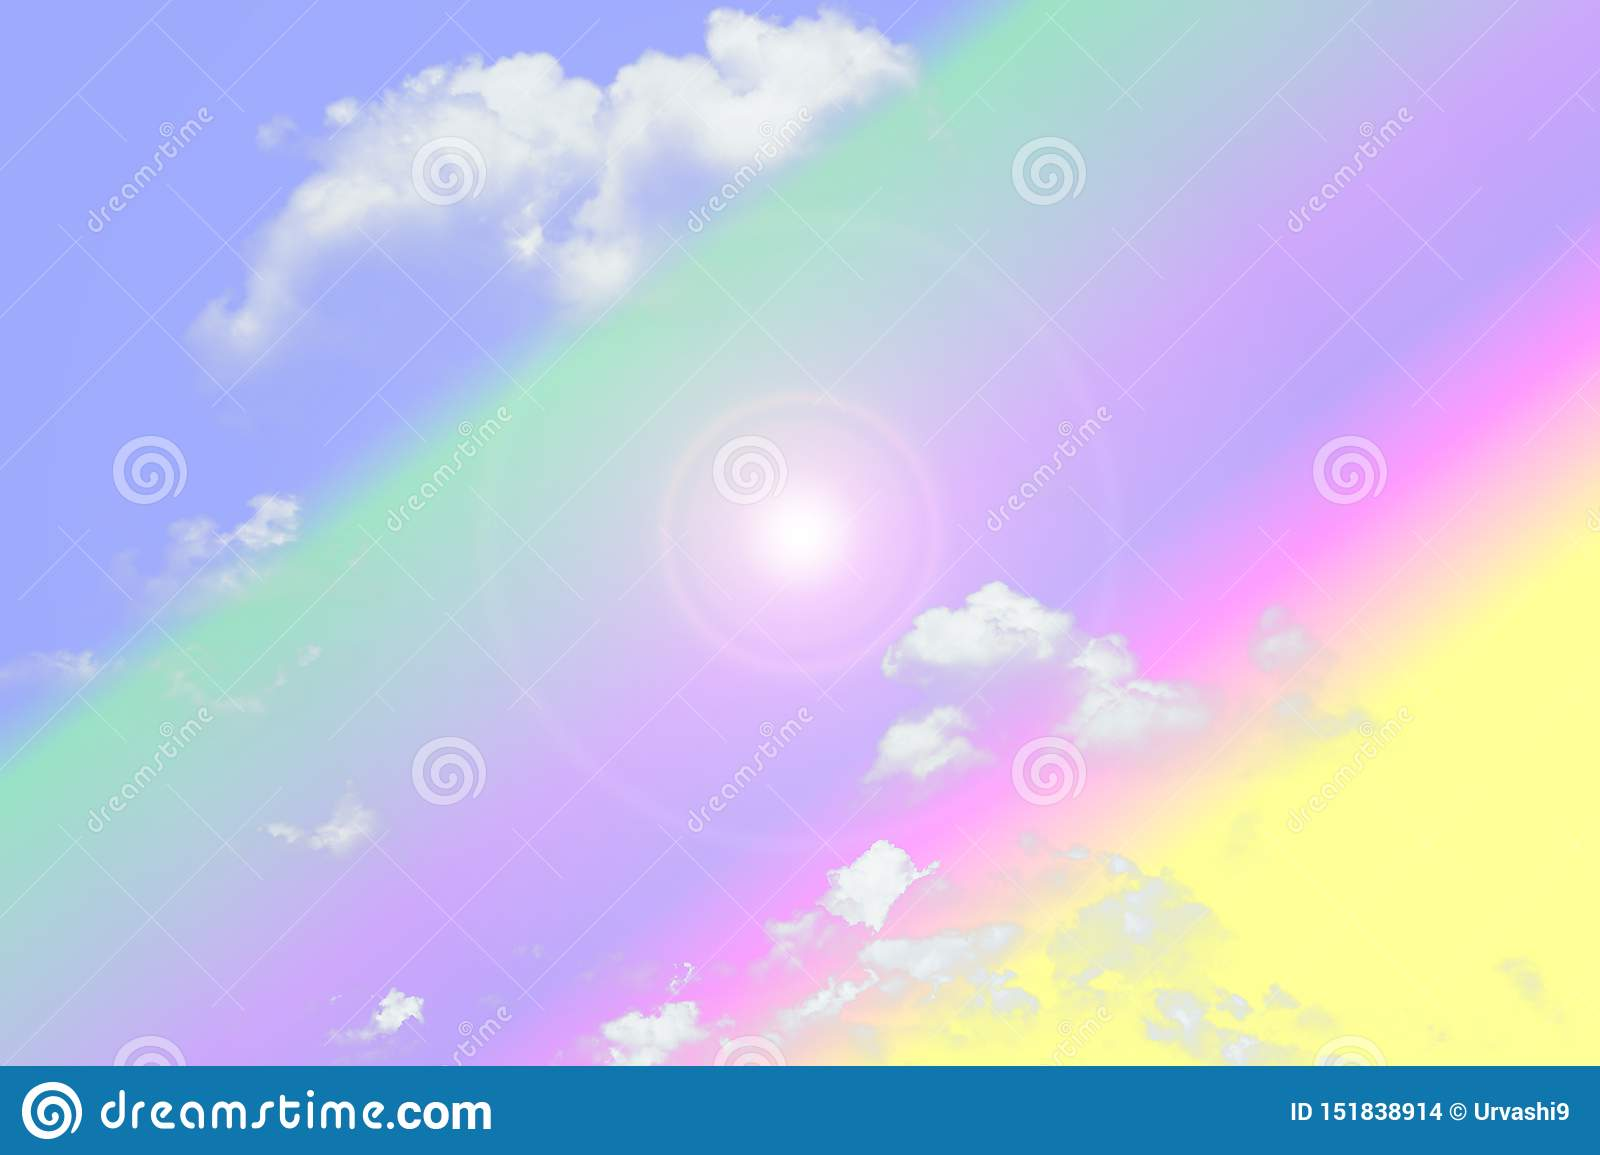 Pastel sky and white cloud, abstract background